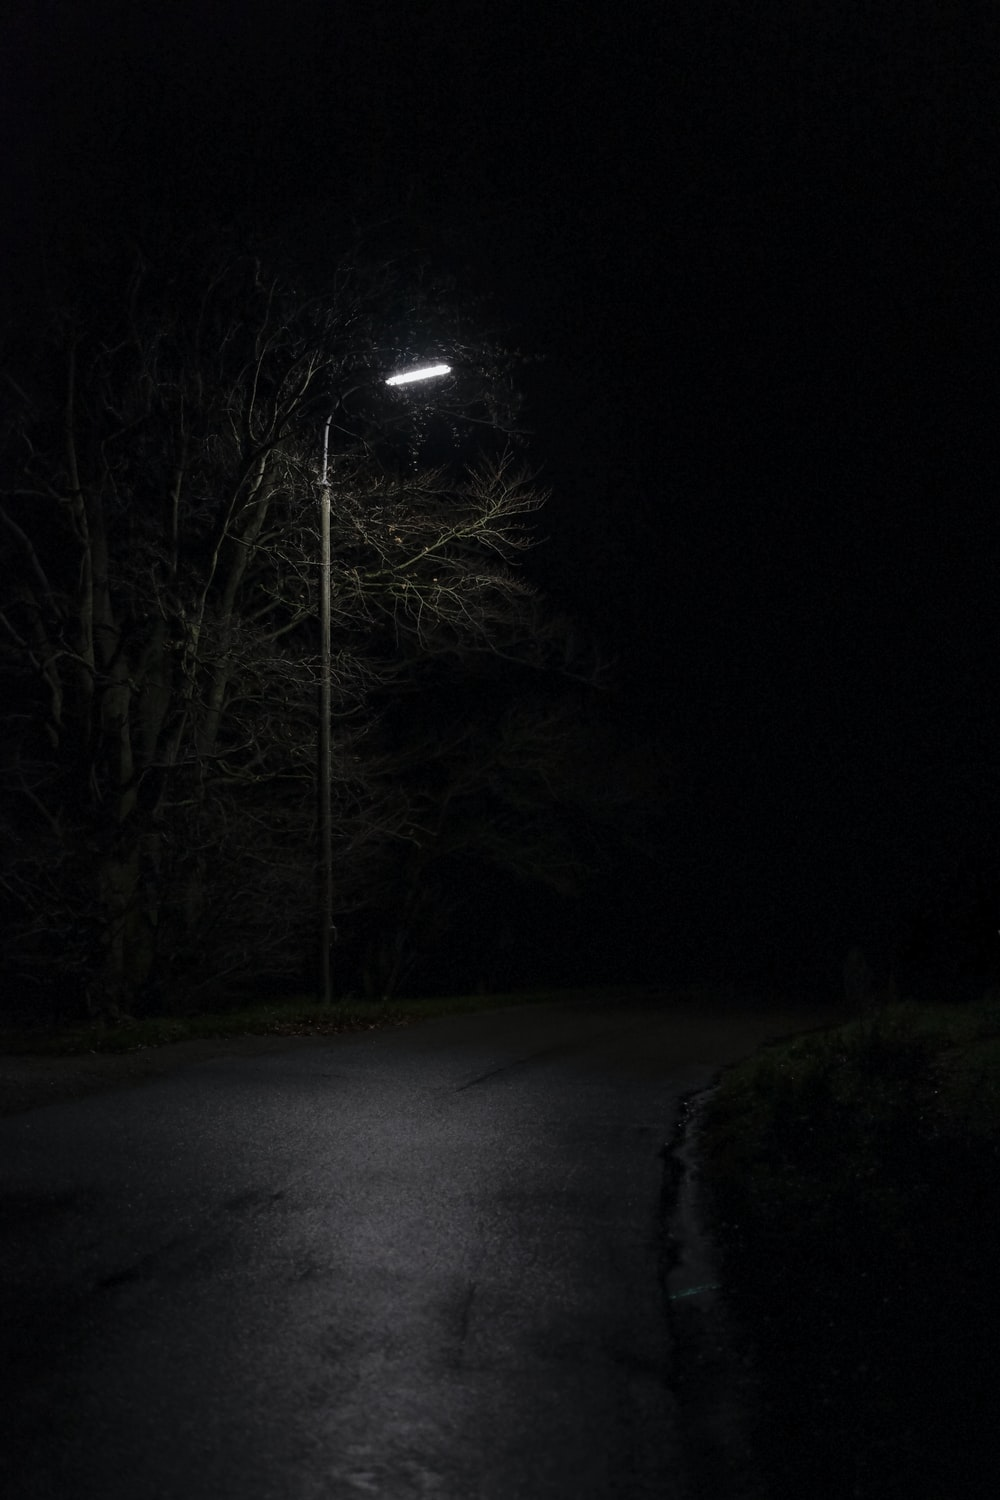 view of empty road under light post